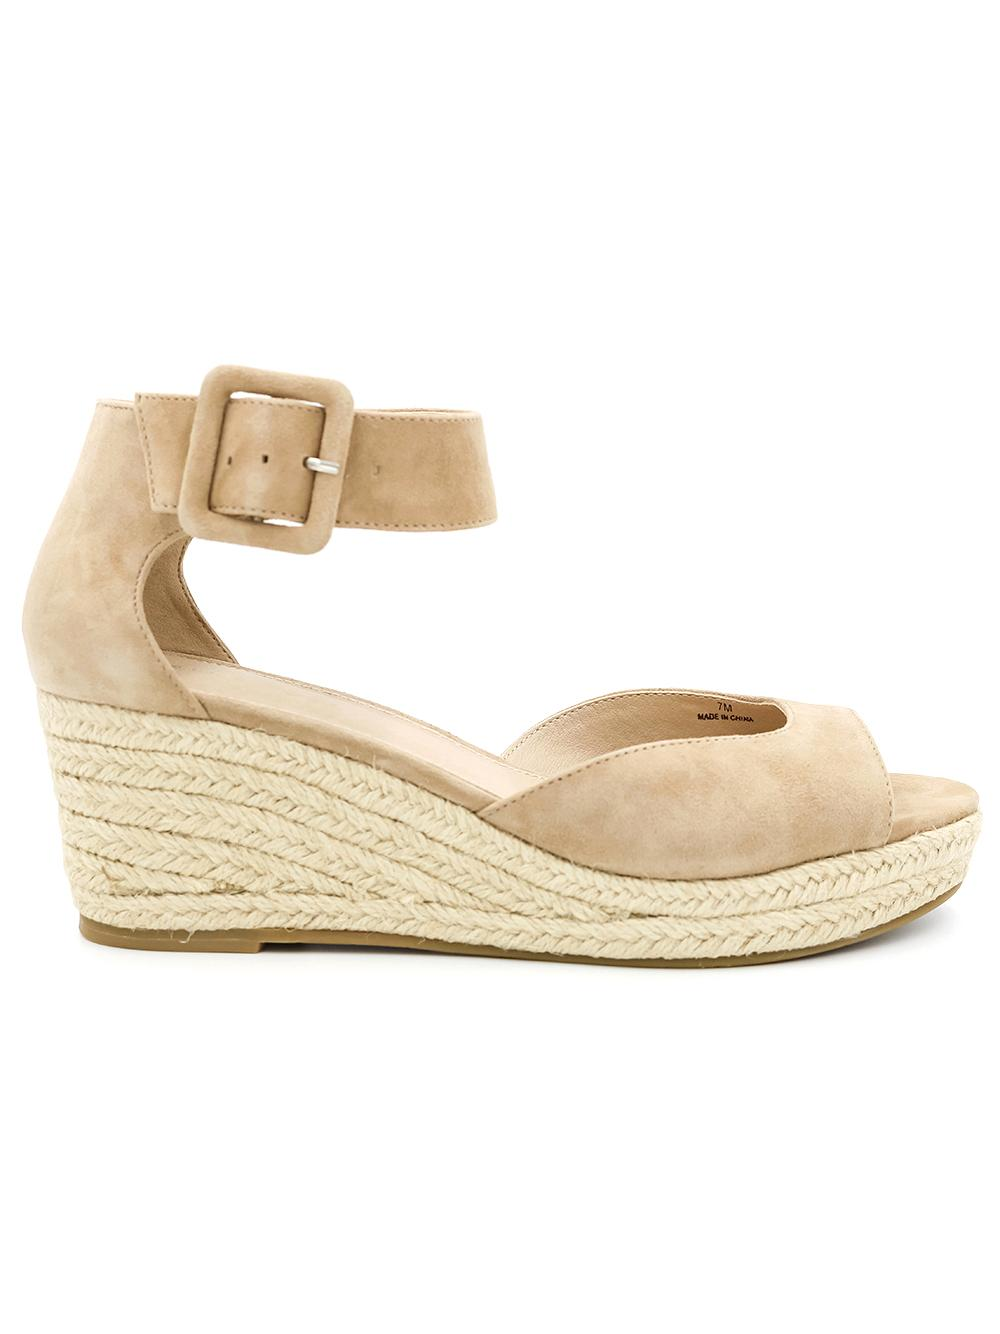 Wedge Espadrille Sandal With Buckle Ankle Strap Item # KAUAI-R19